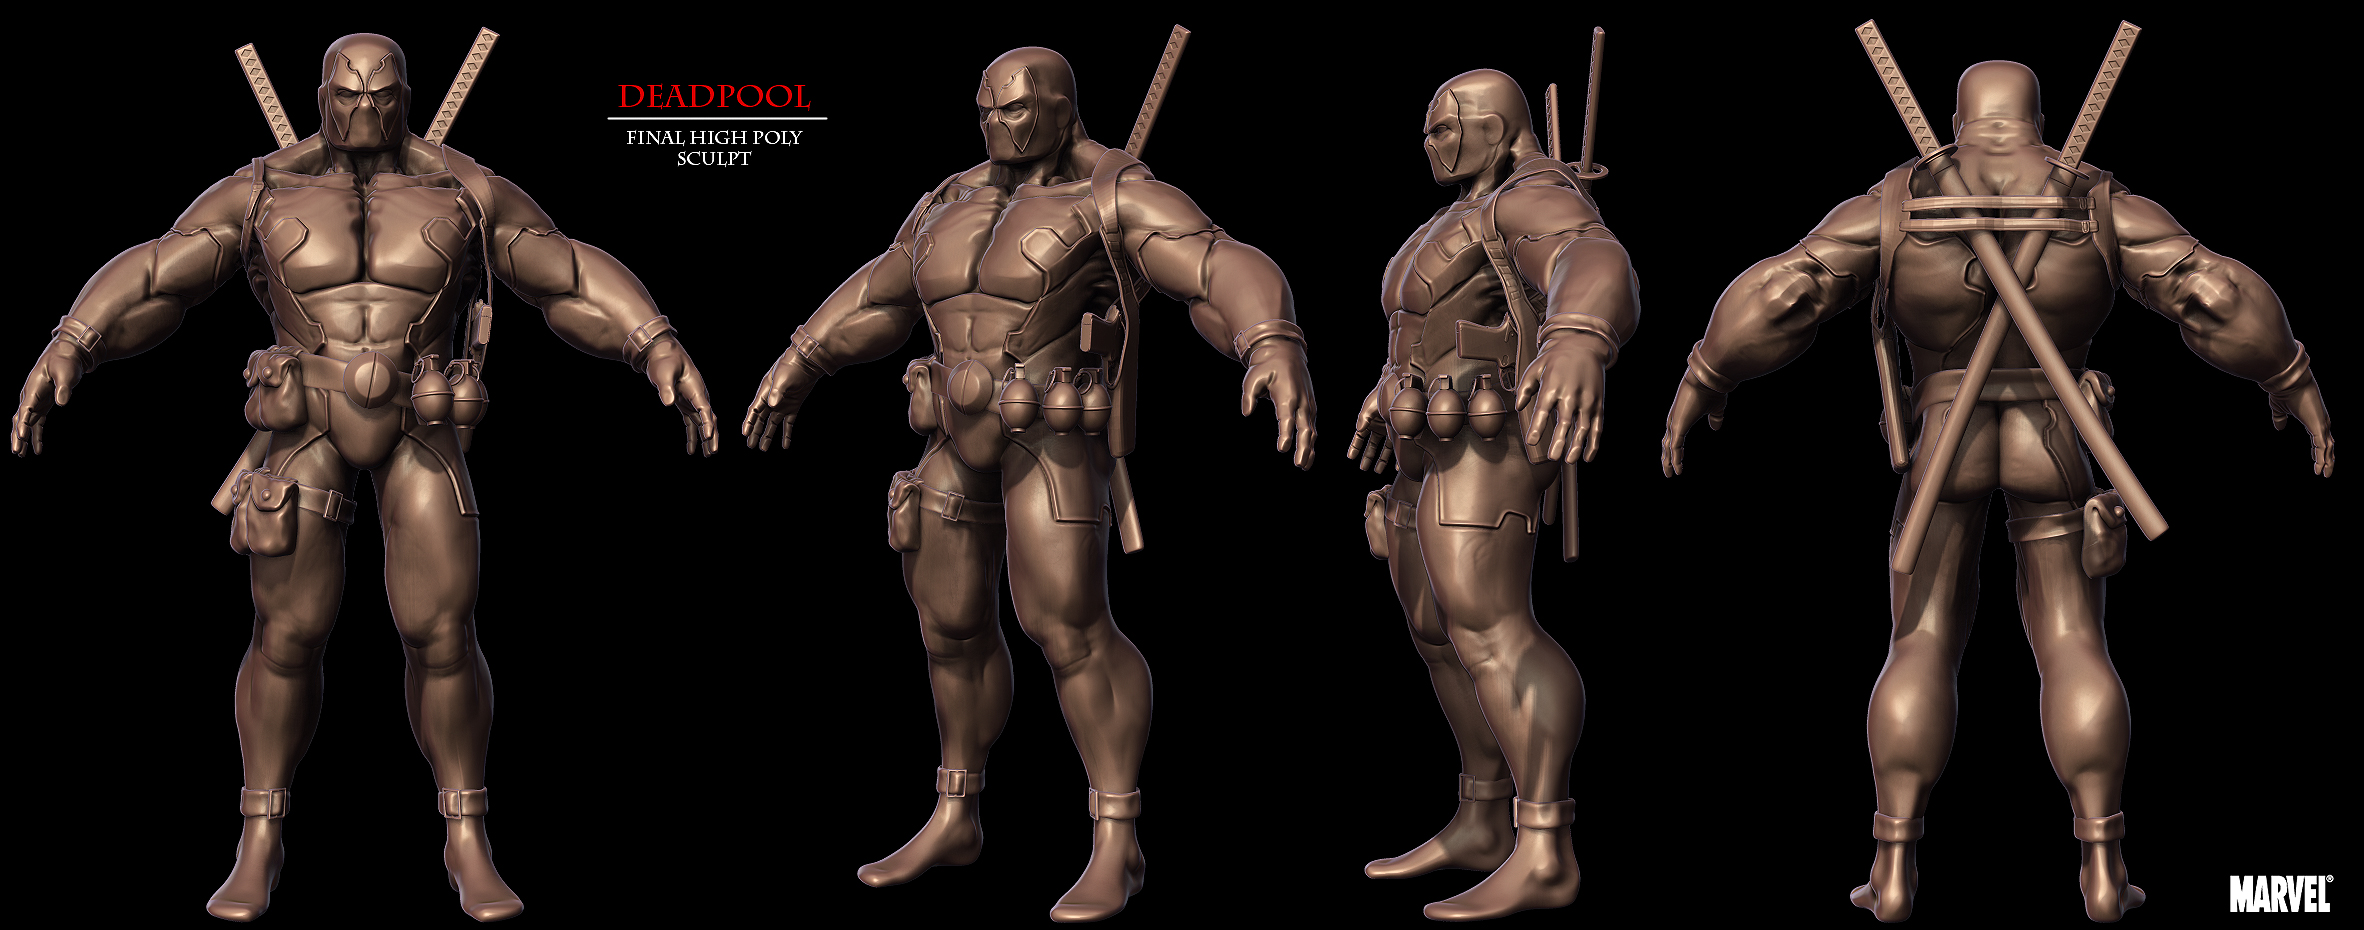 DeadPool HighPoly Sculpt by spybg